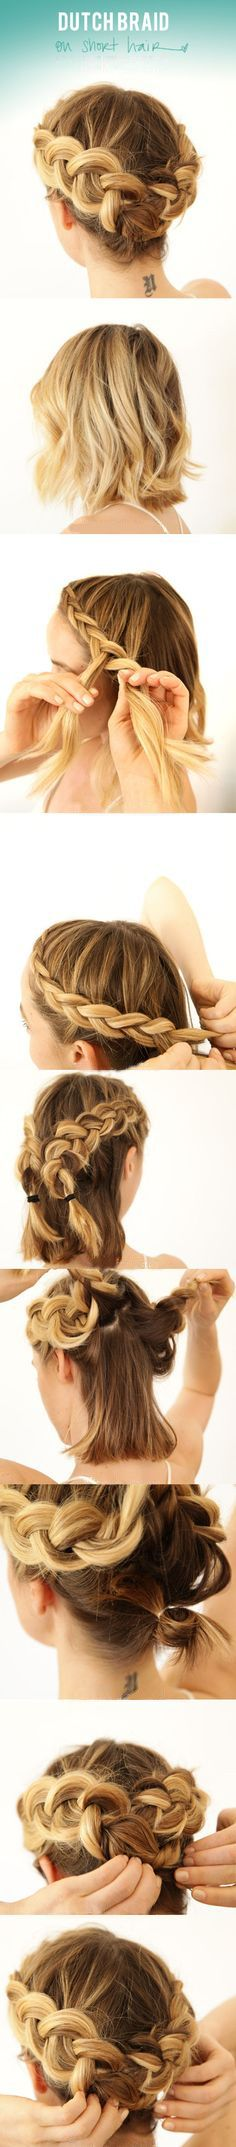 #Braid# How to make the Dutch Braid? Learn more in Besthairbuy.